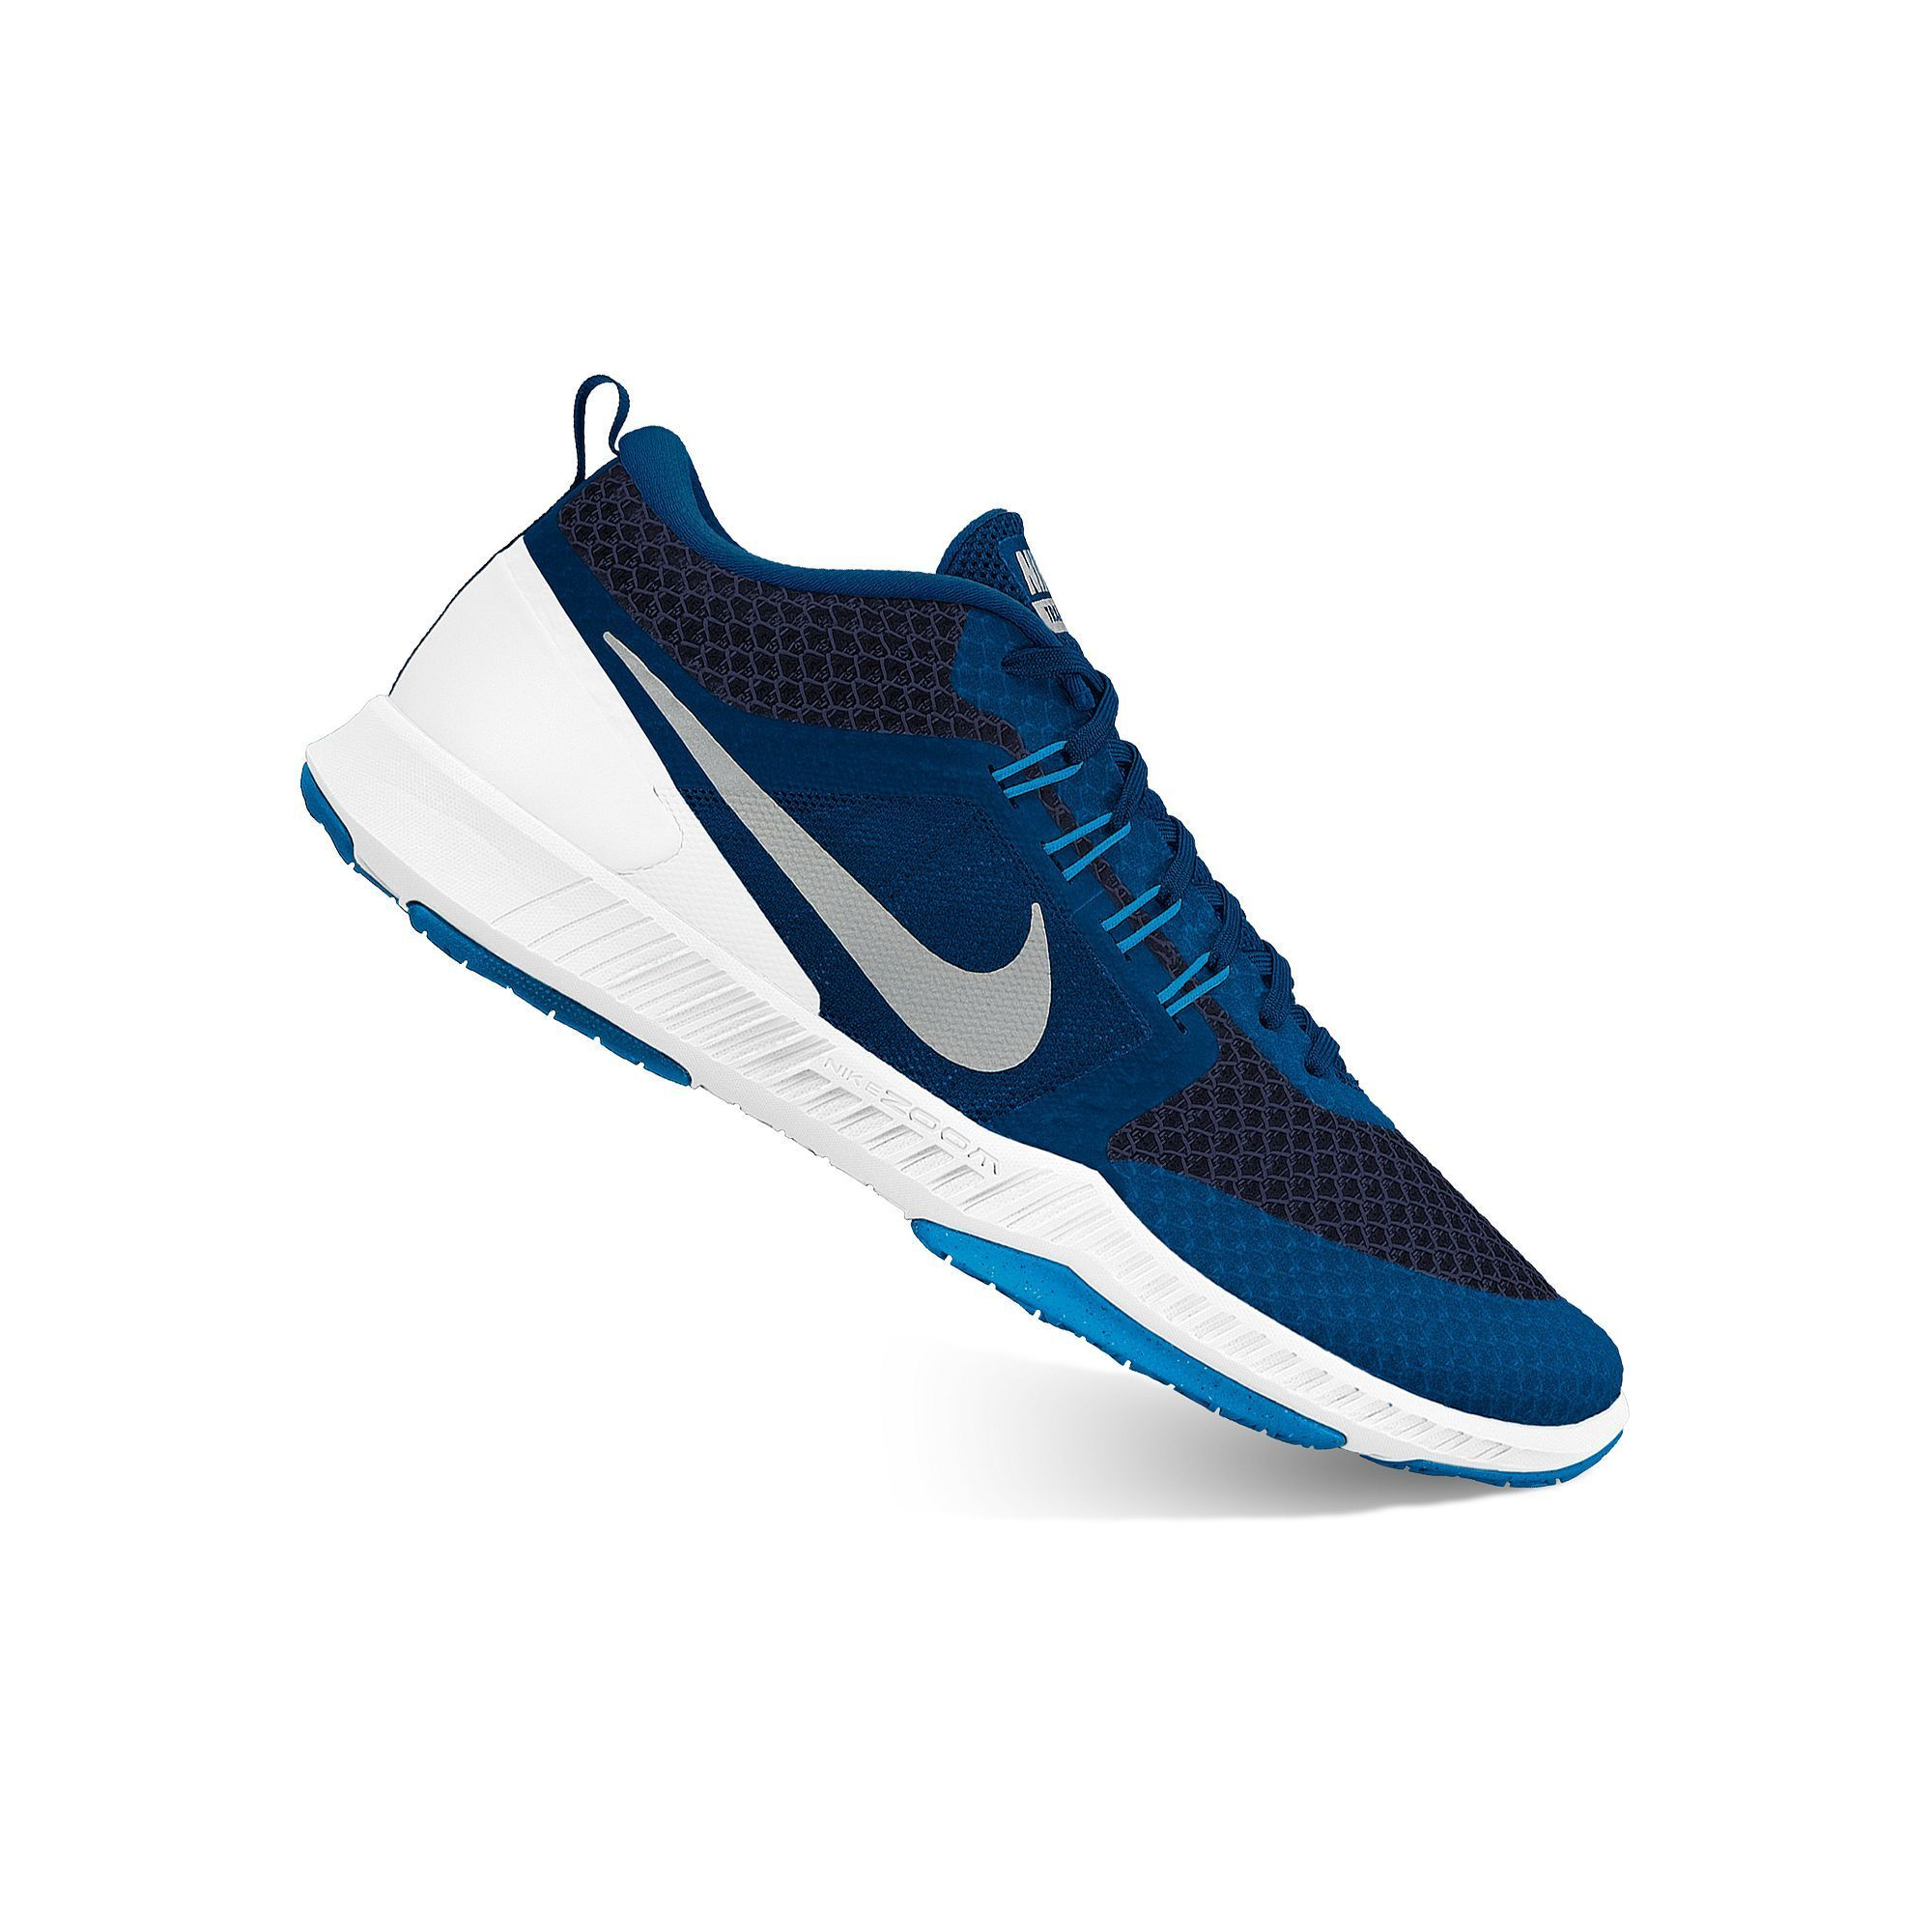 separation shoes e5a5c 0b794 Nike Zoom Domination TR Men s Cross Training Shoes, Size  10.5, Blue